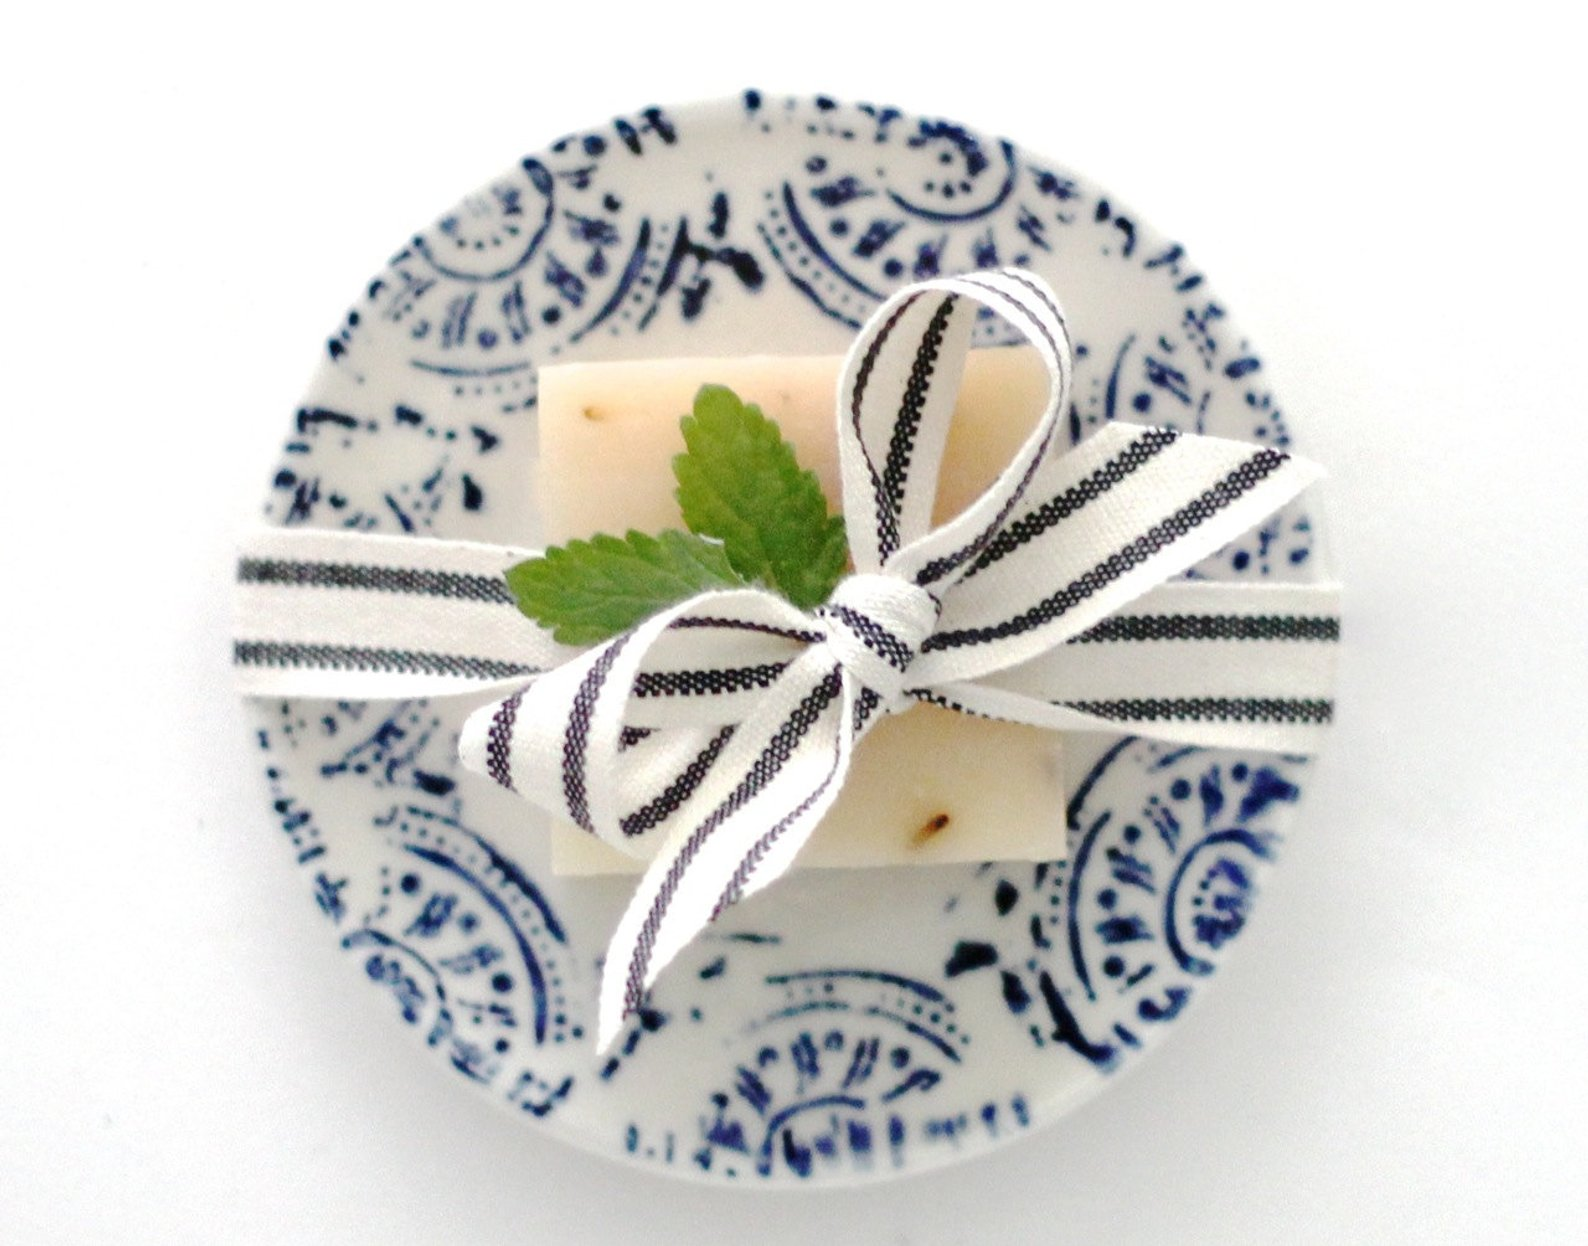 Here is the soap dish we dreamed up and Edith made!!  This dish is not available on her site but you can buy it in  our shop HERE  while supplies last.  The soap is our most popular Lavender Lemongrass and it comes tied with this ticking ribbon and gift boxed with a navy ribbon and gift tag for no additional charge so it can be sent directly to your mom for mother's day for example.